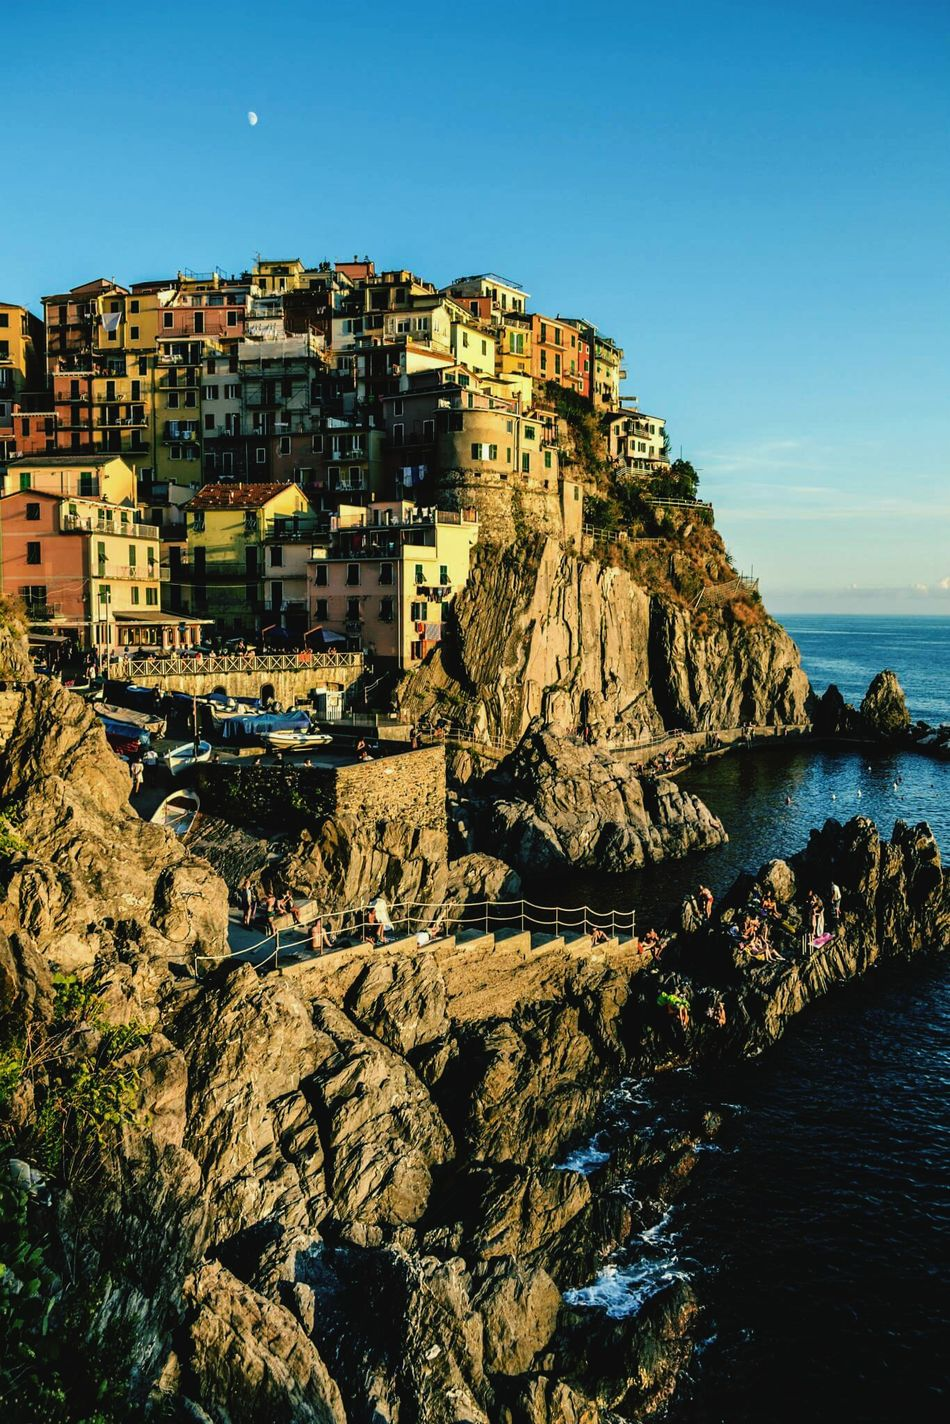 Riomaggiore, Cinque Terre Ilovethisplace Beautiful Nature Colourful Littlehouses Themostbeautifulplace IWantToGoBack  IwantToLiveThere